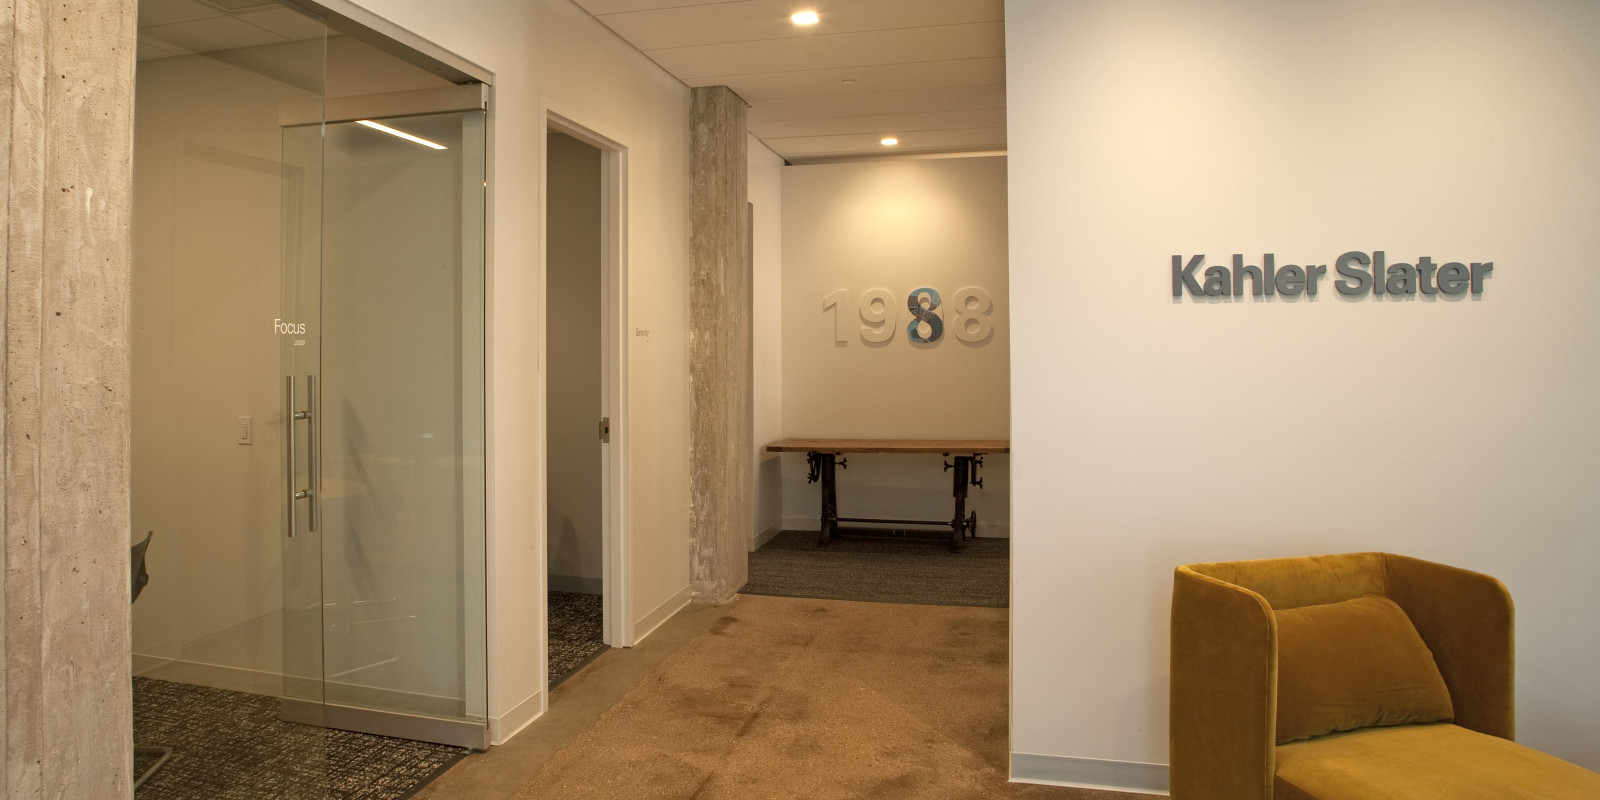 Kahler Slater office reception area, Madison WI